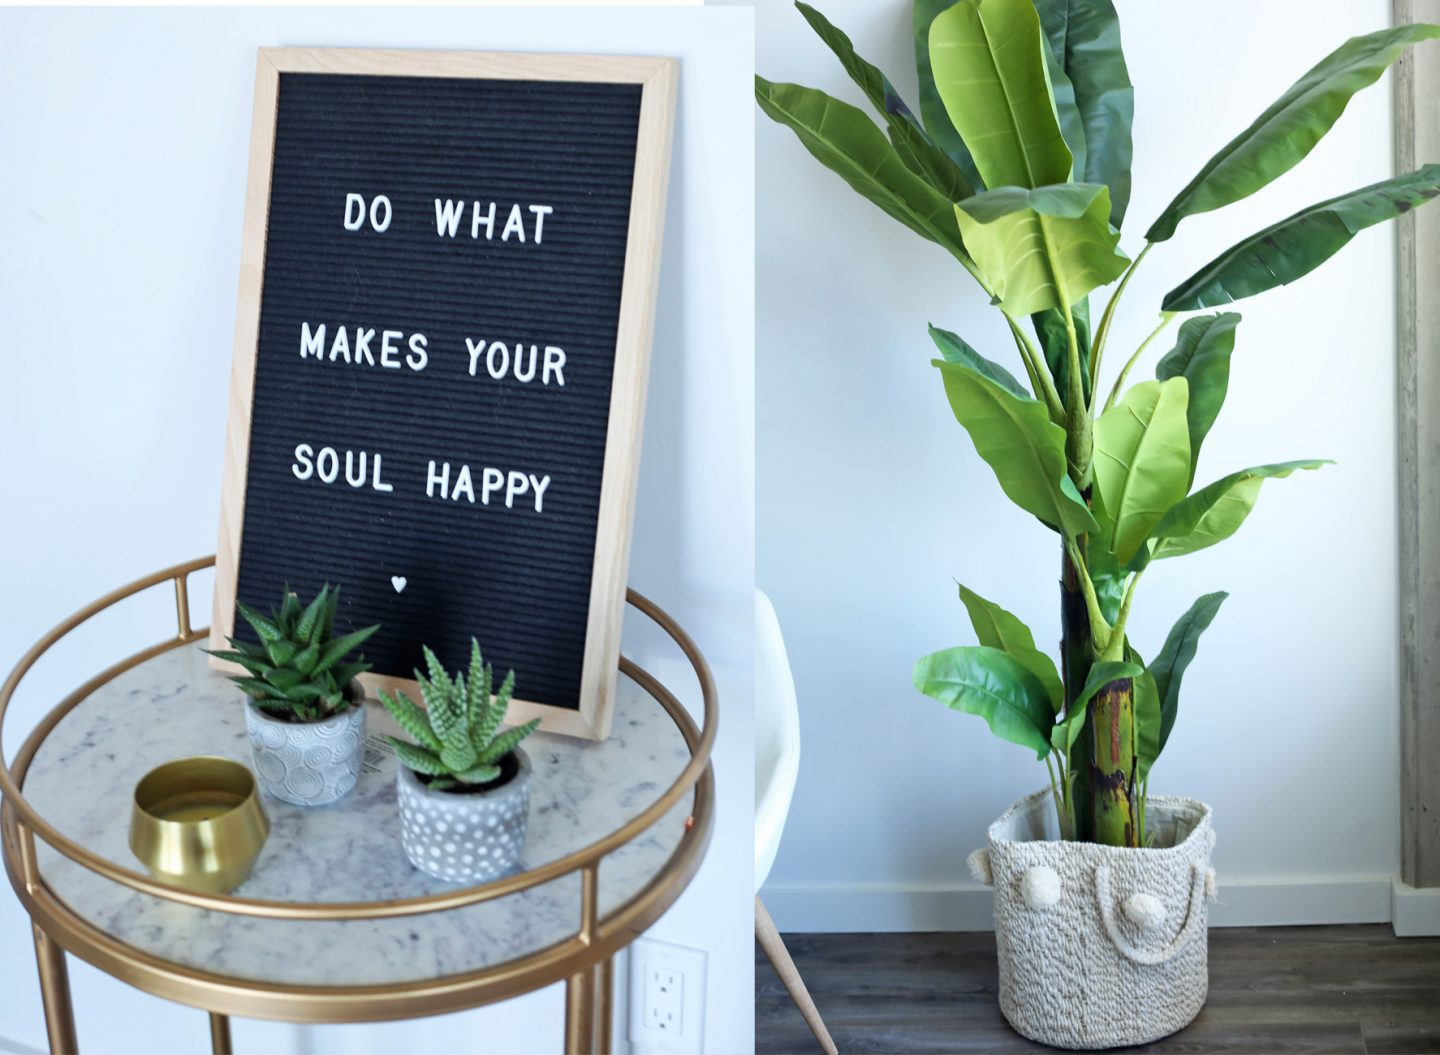 Mash Elle lifestyle blogger | home decor | calm home | cute home decor | board decoration| succulents | gold accents